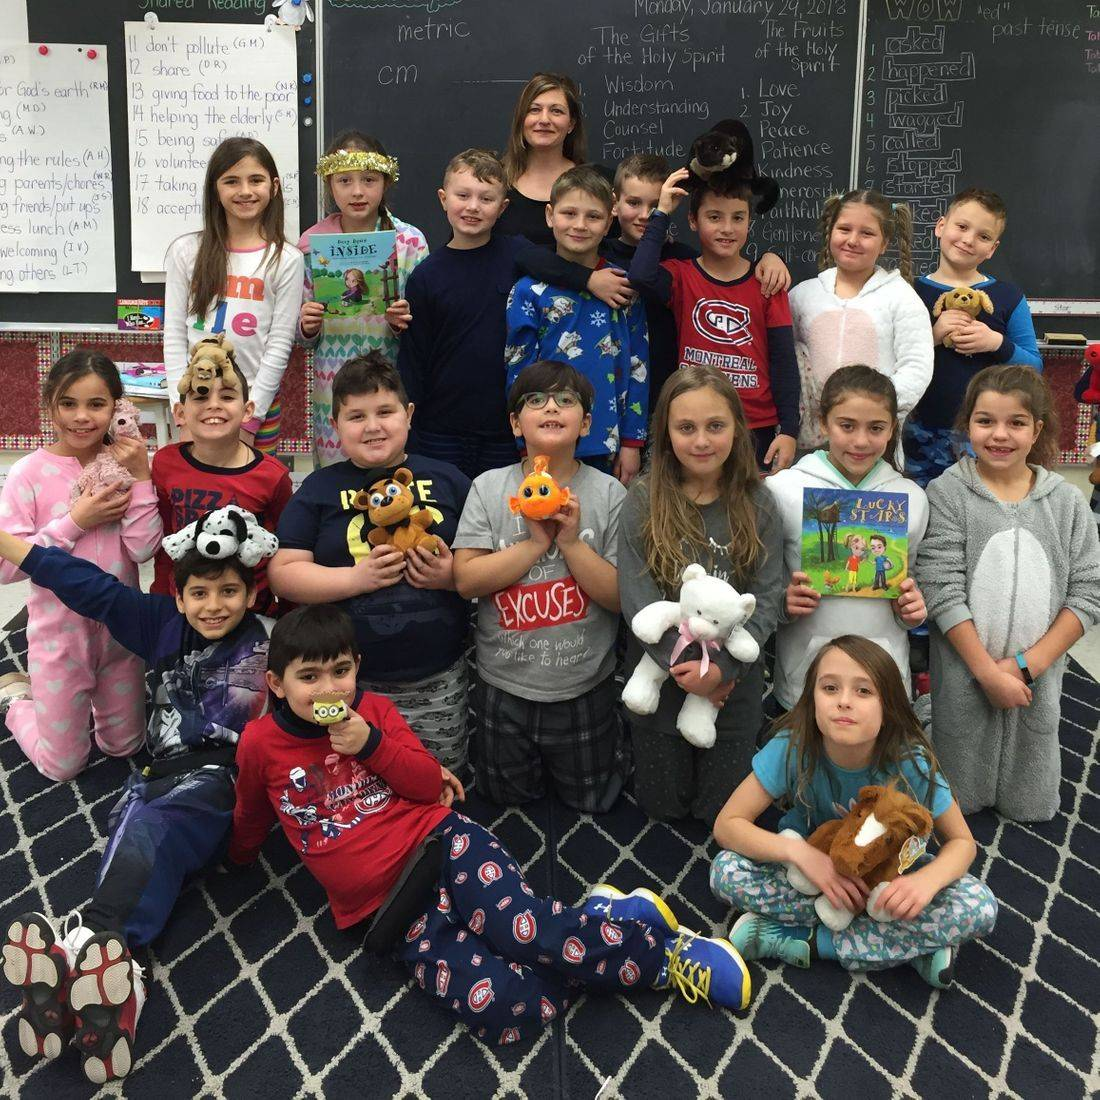 Snuggle Up and Read Day January 29, 2018 with grade 3 students and Author Daniella Grsic with her books Deep Down Inside and Lucky Stars